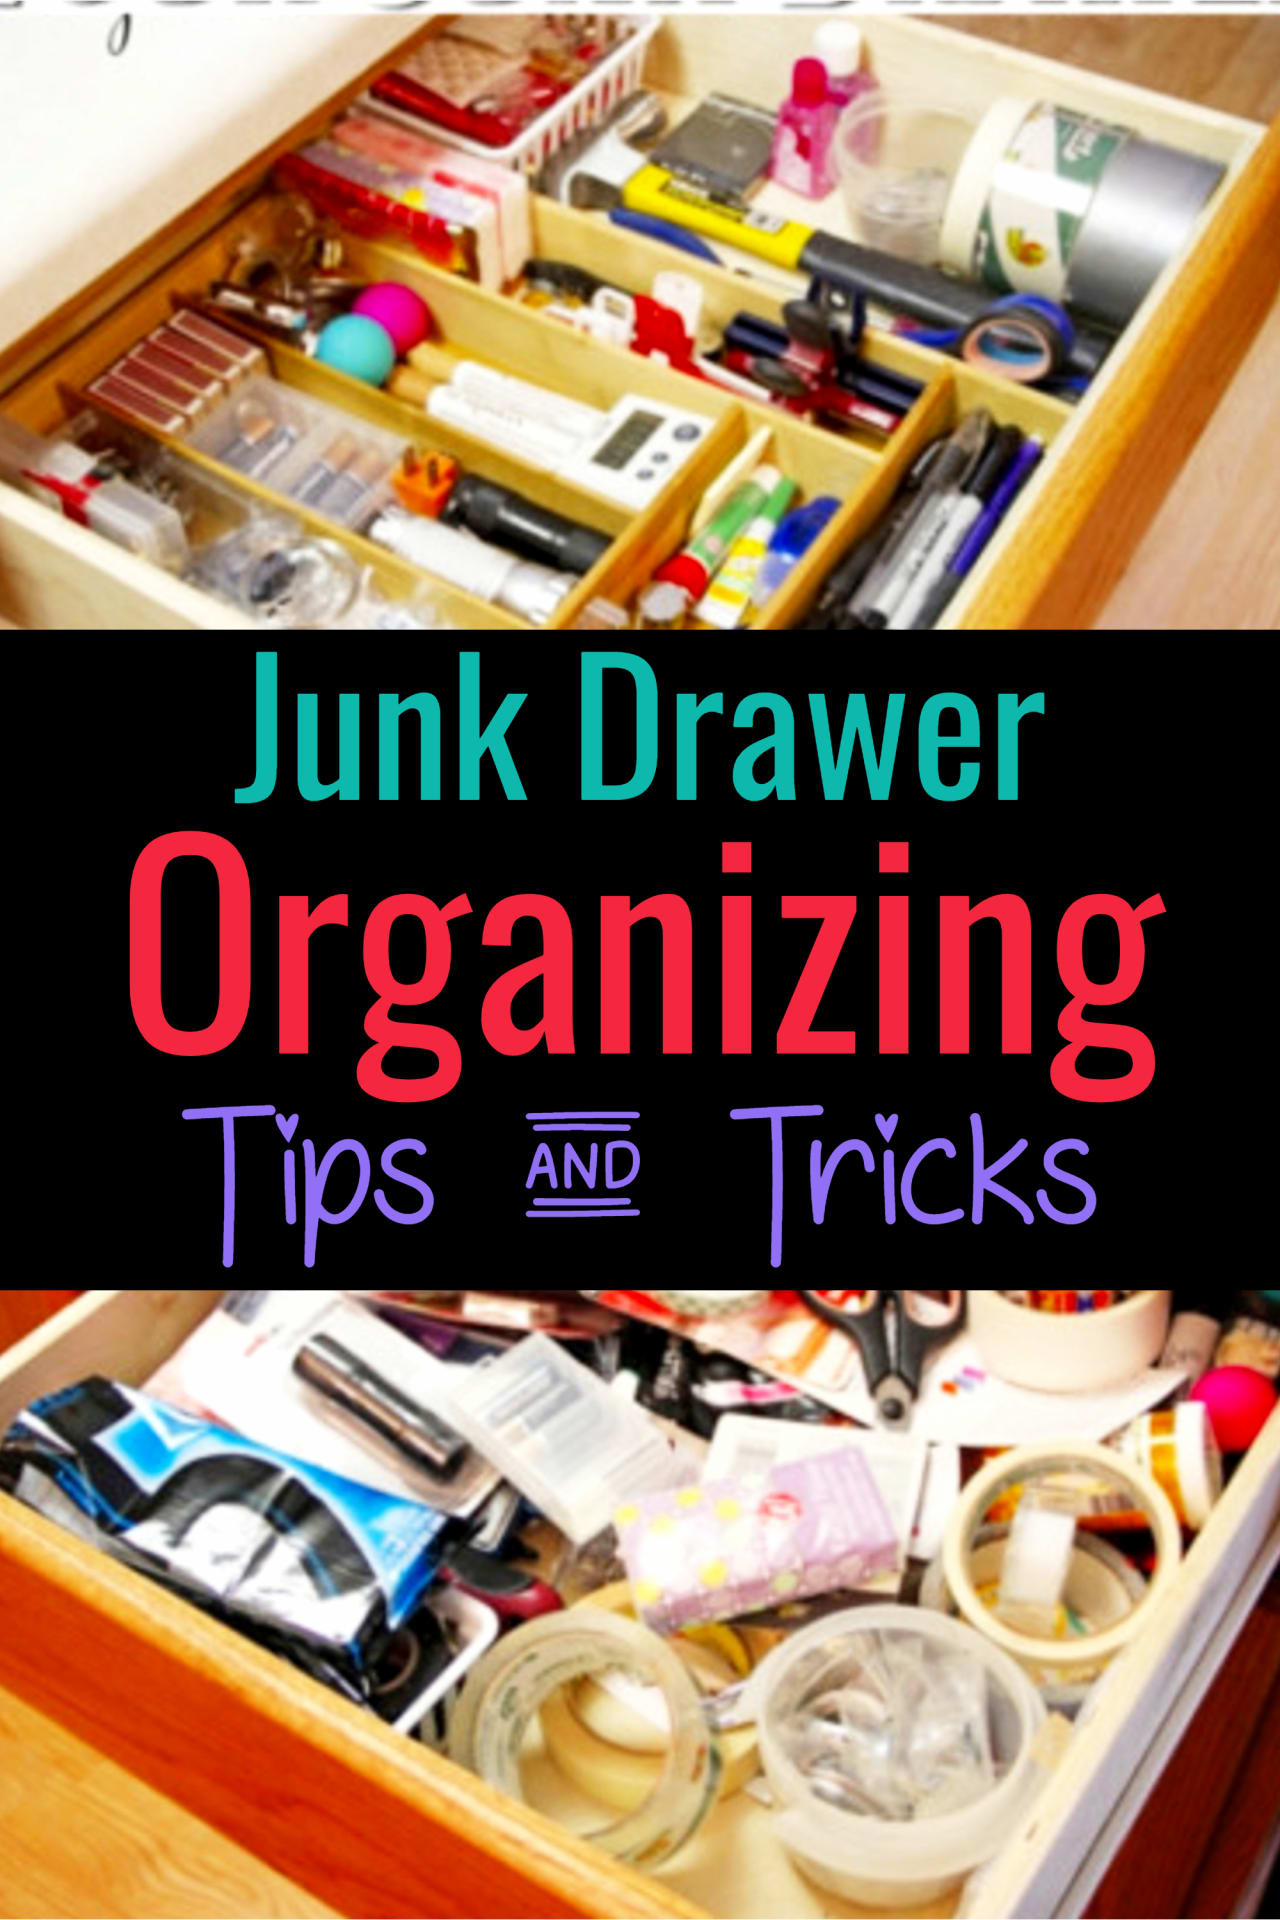 How to organize your junk drawer the EASY way.  These junk drawer organizing tips are sure to get your kitchen junk drawer decluttered and organized super fast.  If you love EASY drawer organization ideas, these DIY ideas are for you!